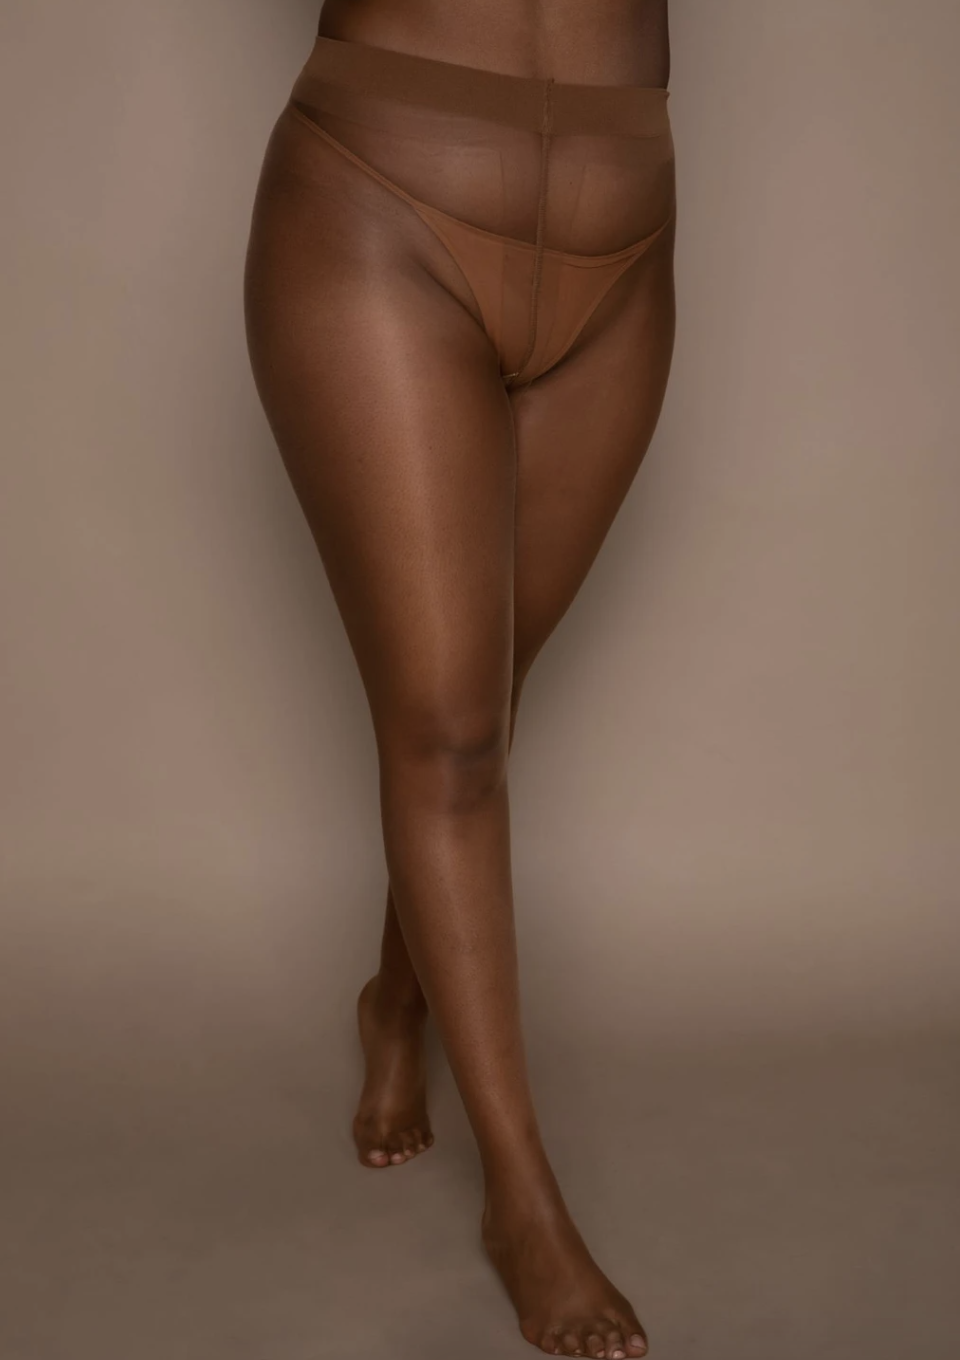 A model wearing the tights in caramel